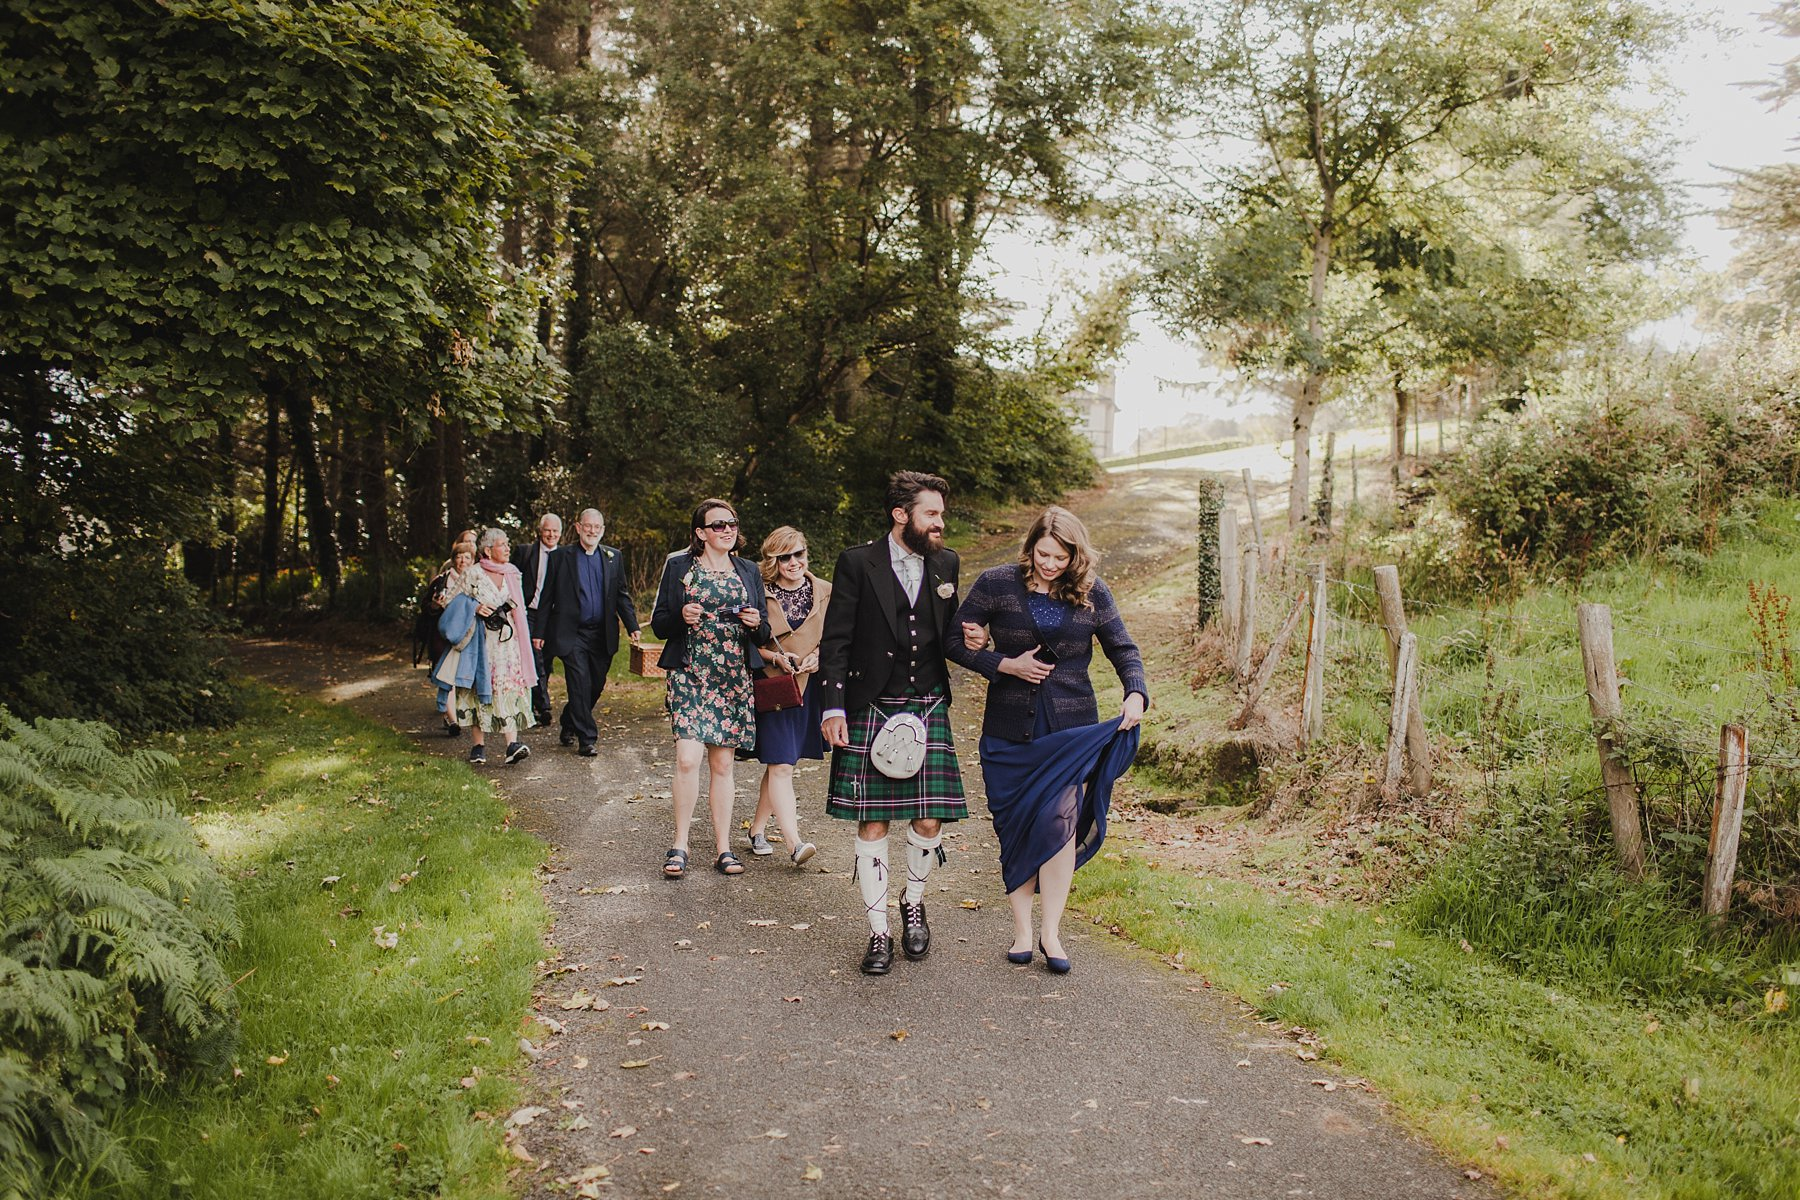 hornhead_donegak_elopement_weddings_0048